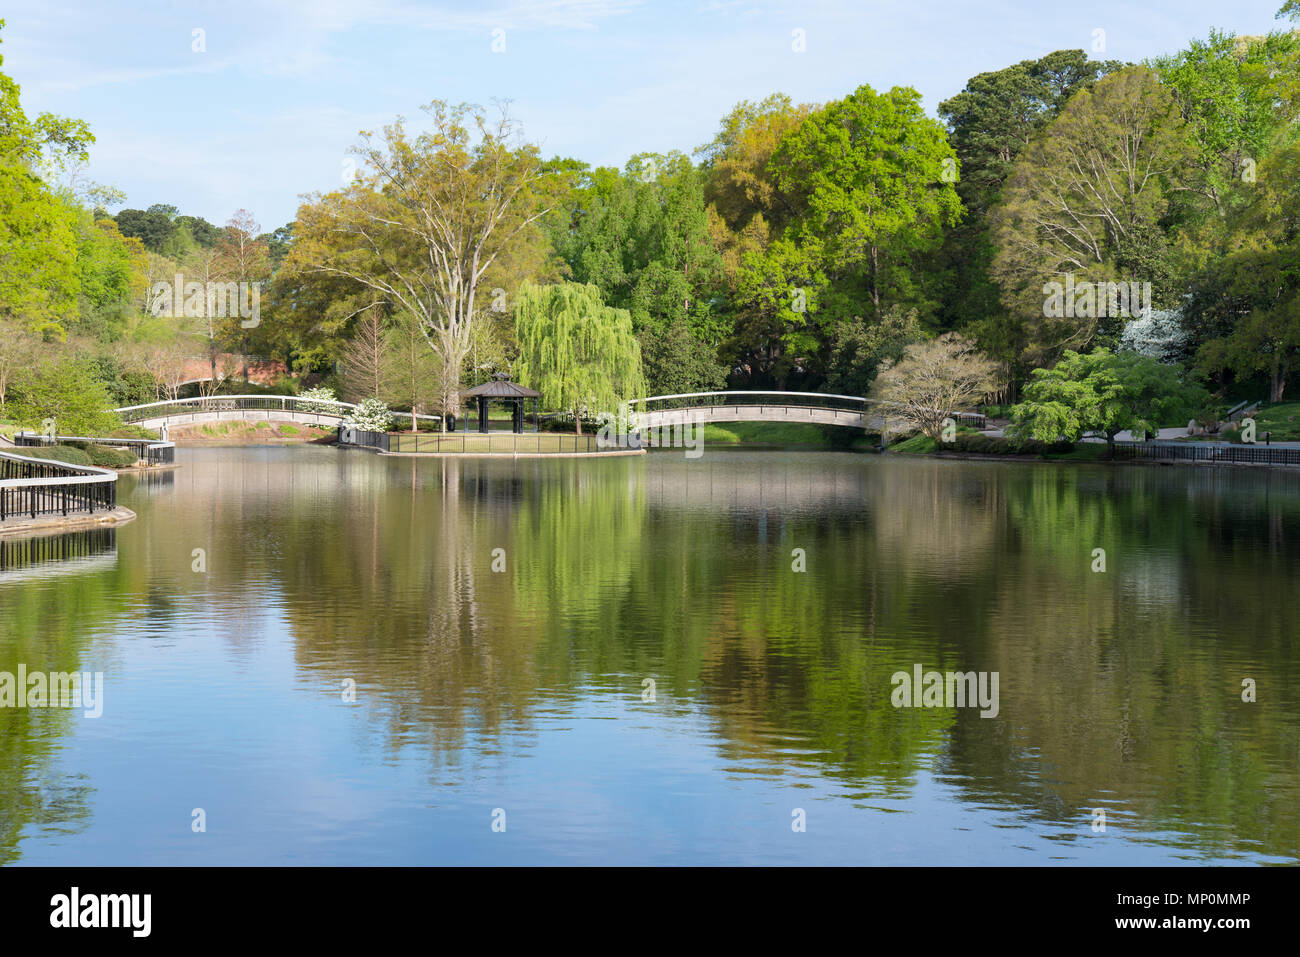 Bridges Over Lake in Pullen Park in Raleigh, North Carolina - Stock Image